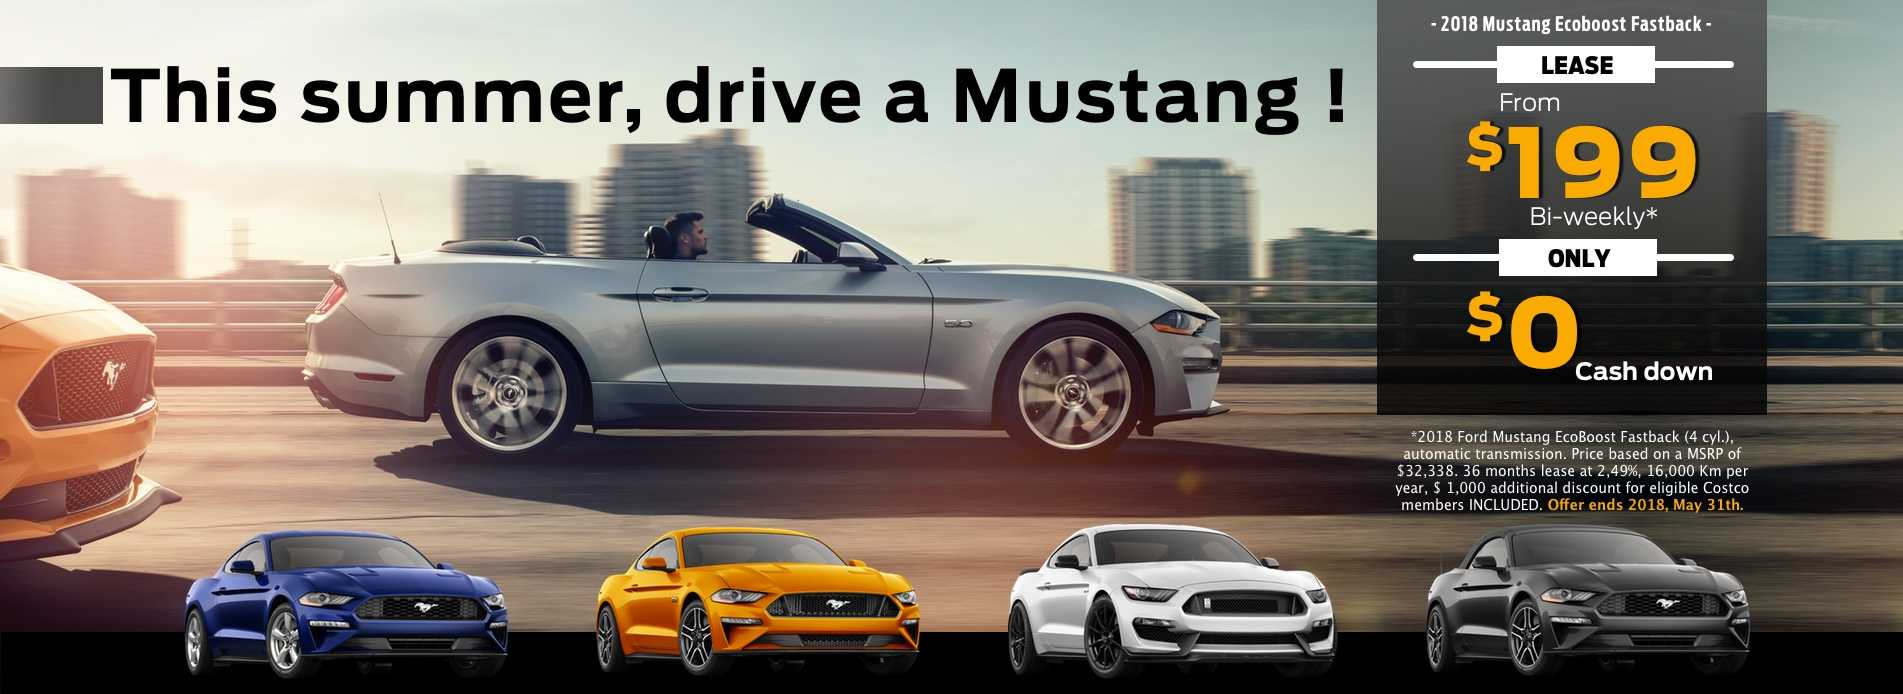 Drive a 2018 Mustang for only $199 bi-weekly